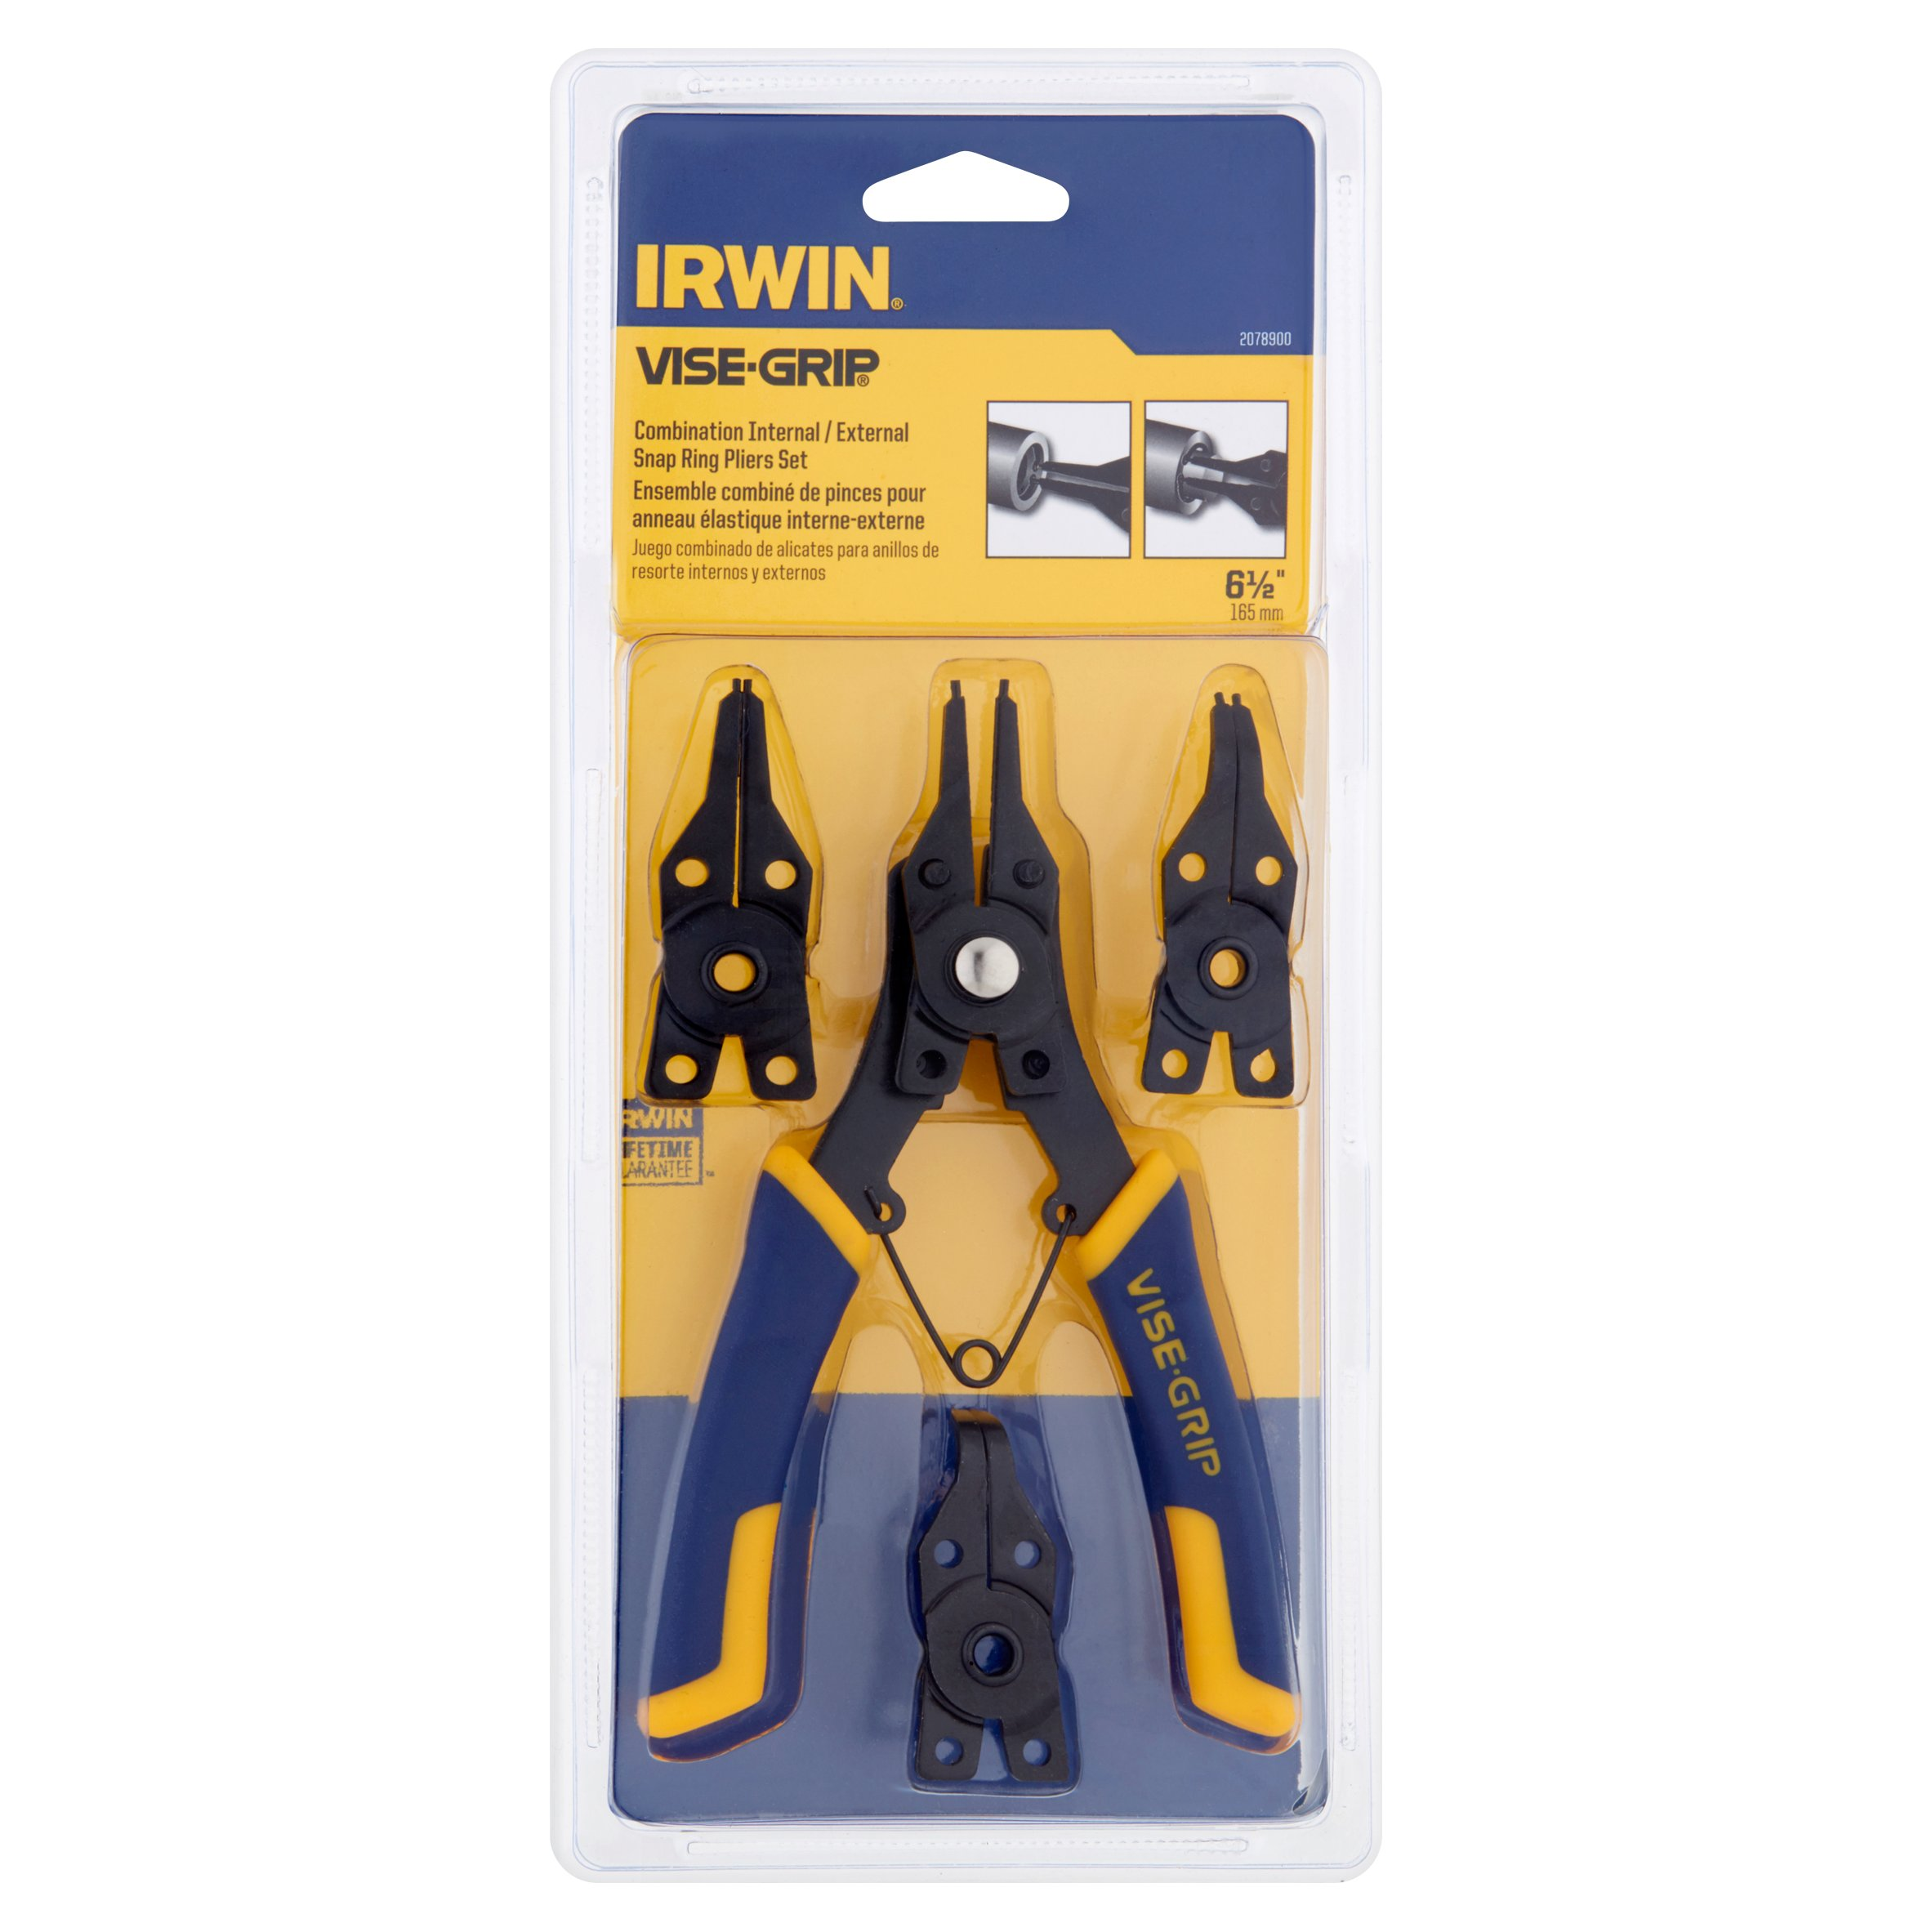 Irwin Vise-Grip Combination Internal External Snap Ring Pliers Set by Irwin® Tools